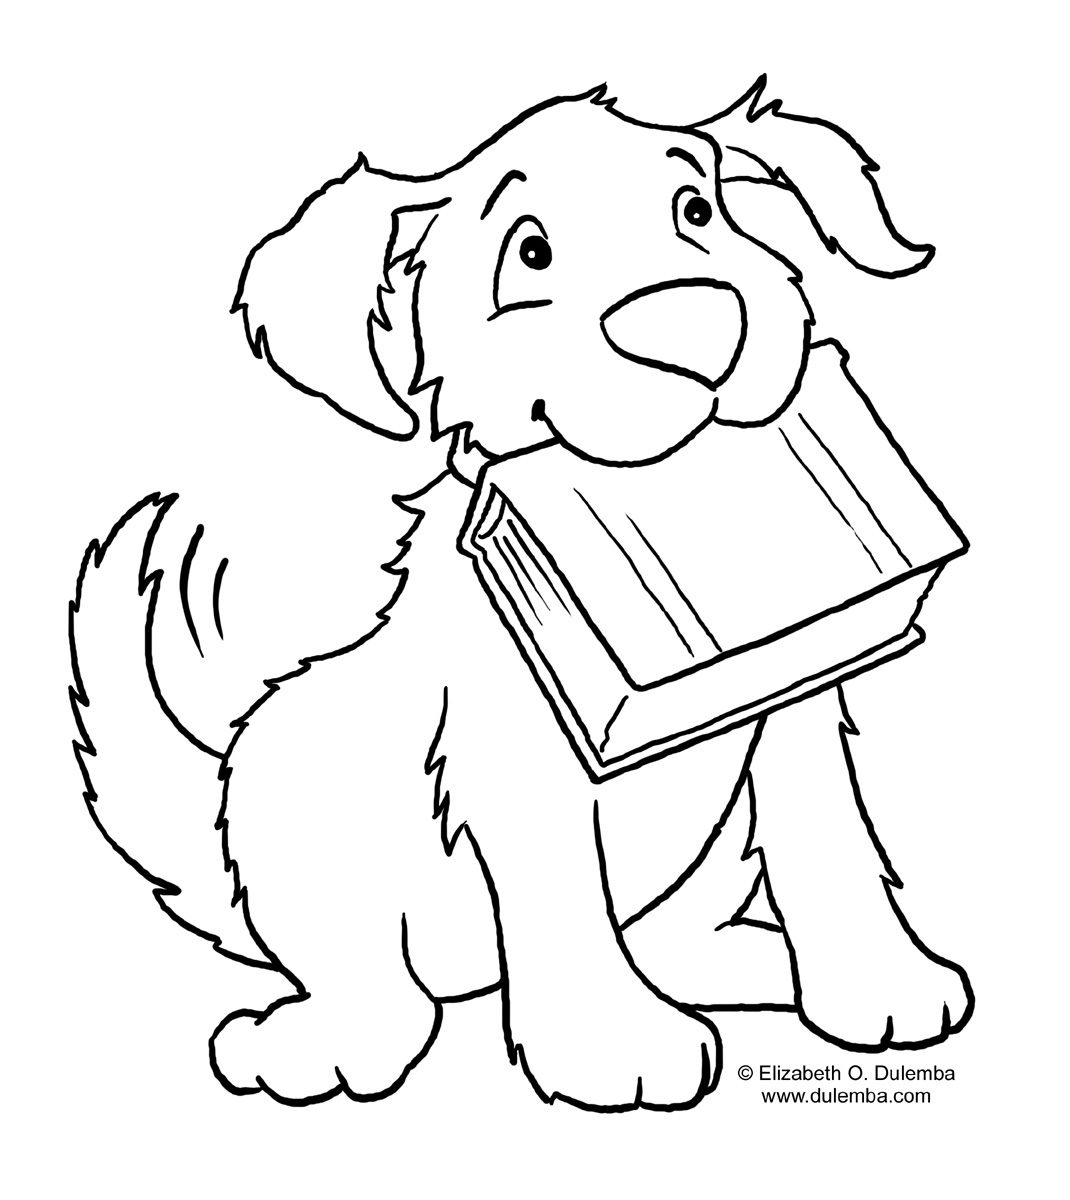 1070x1200 Dogs Printable Coloring Pages For Kids Find On Book Of